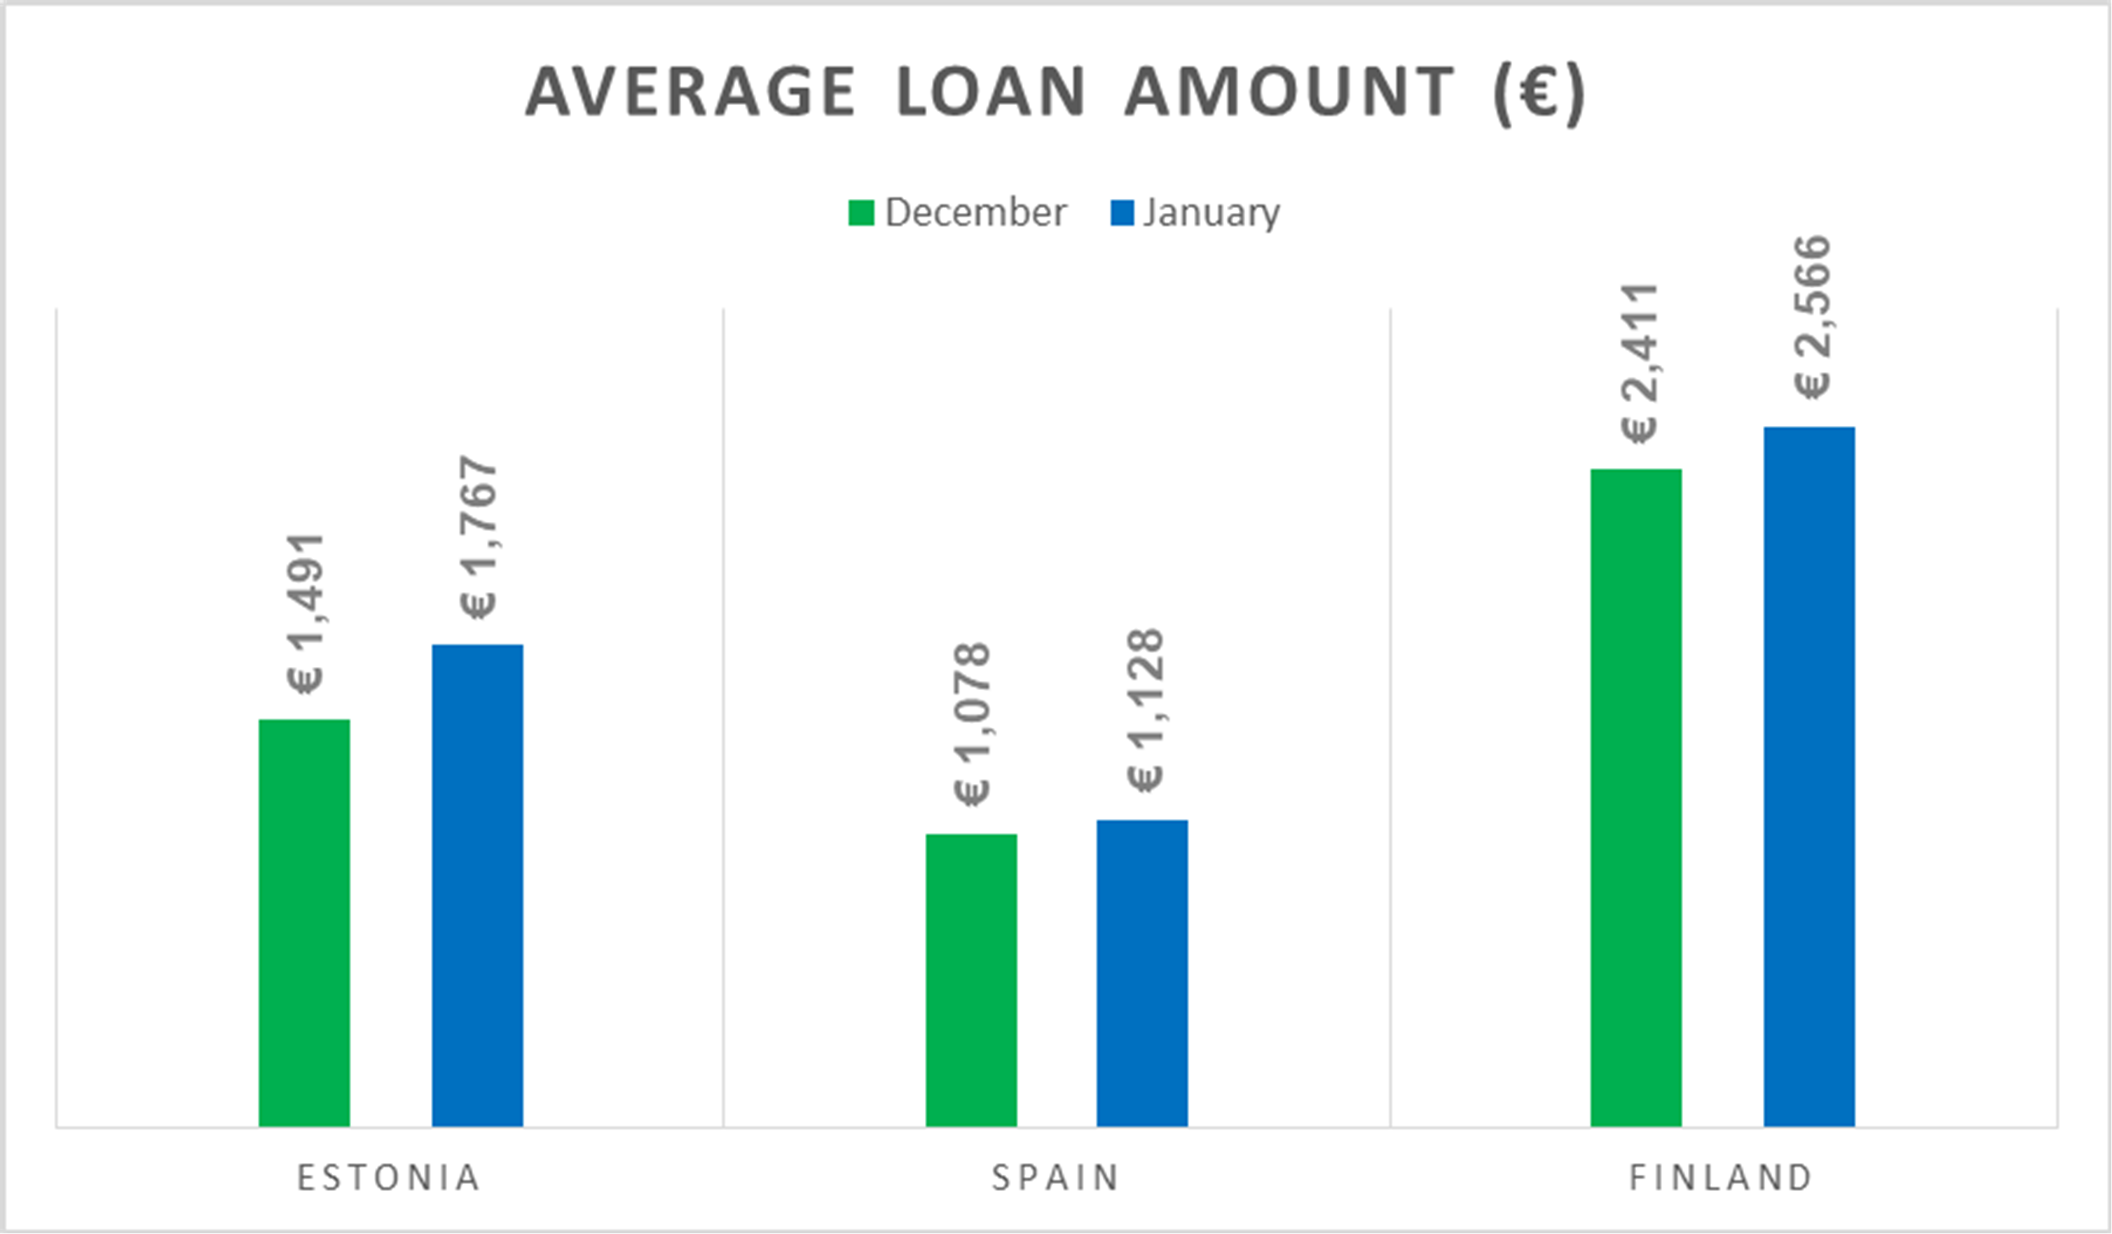 avg-loan-amount-january-2018